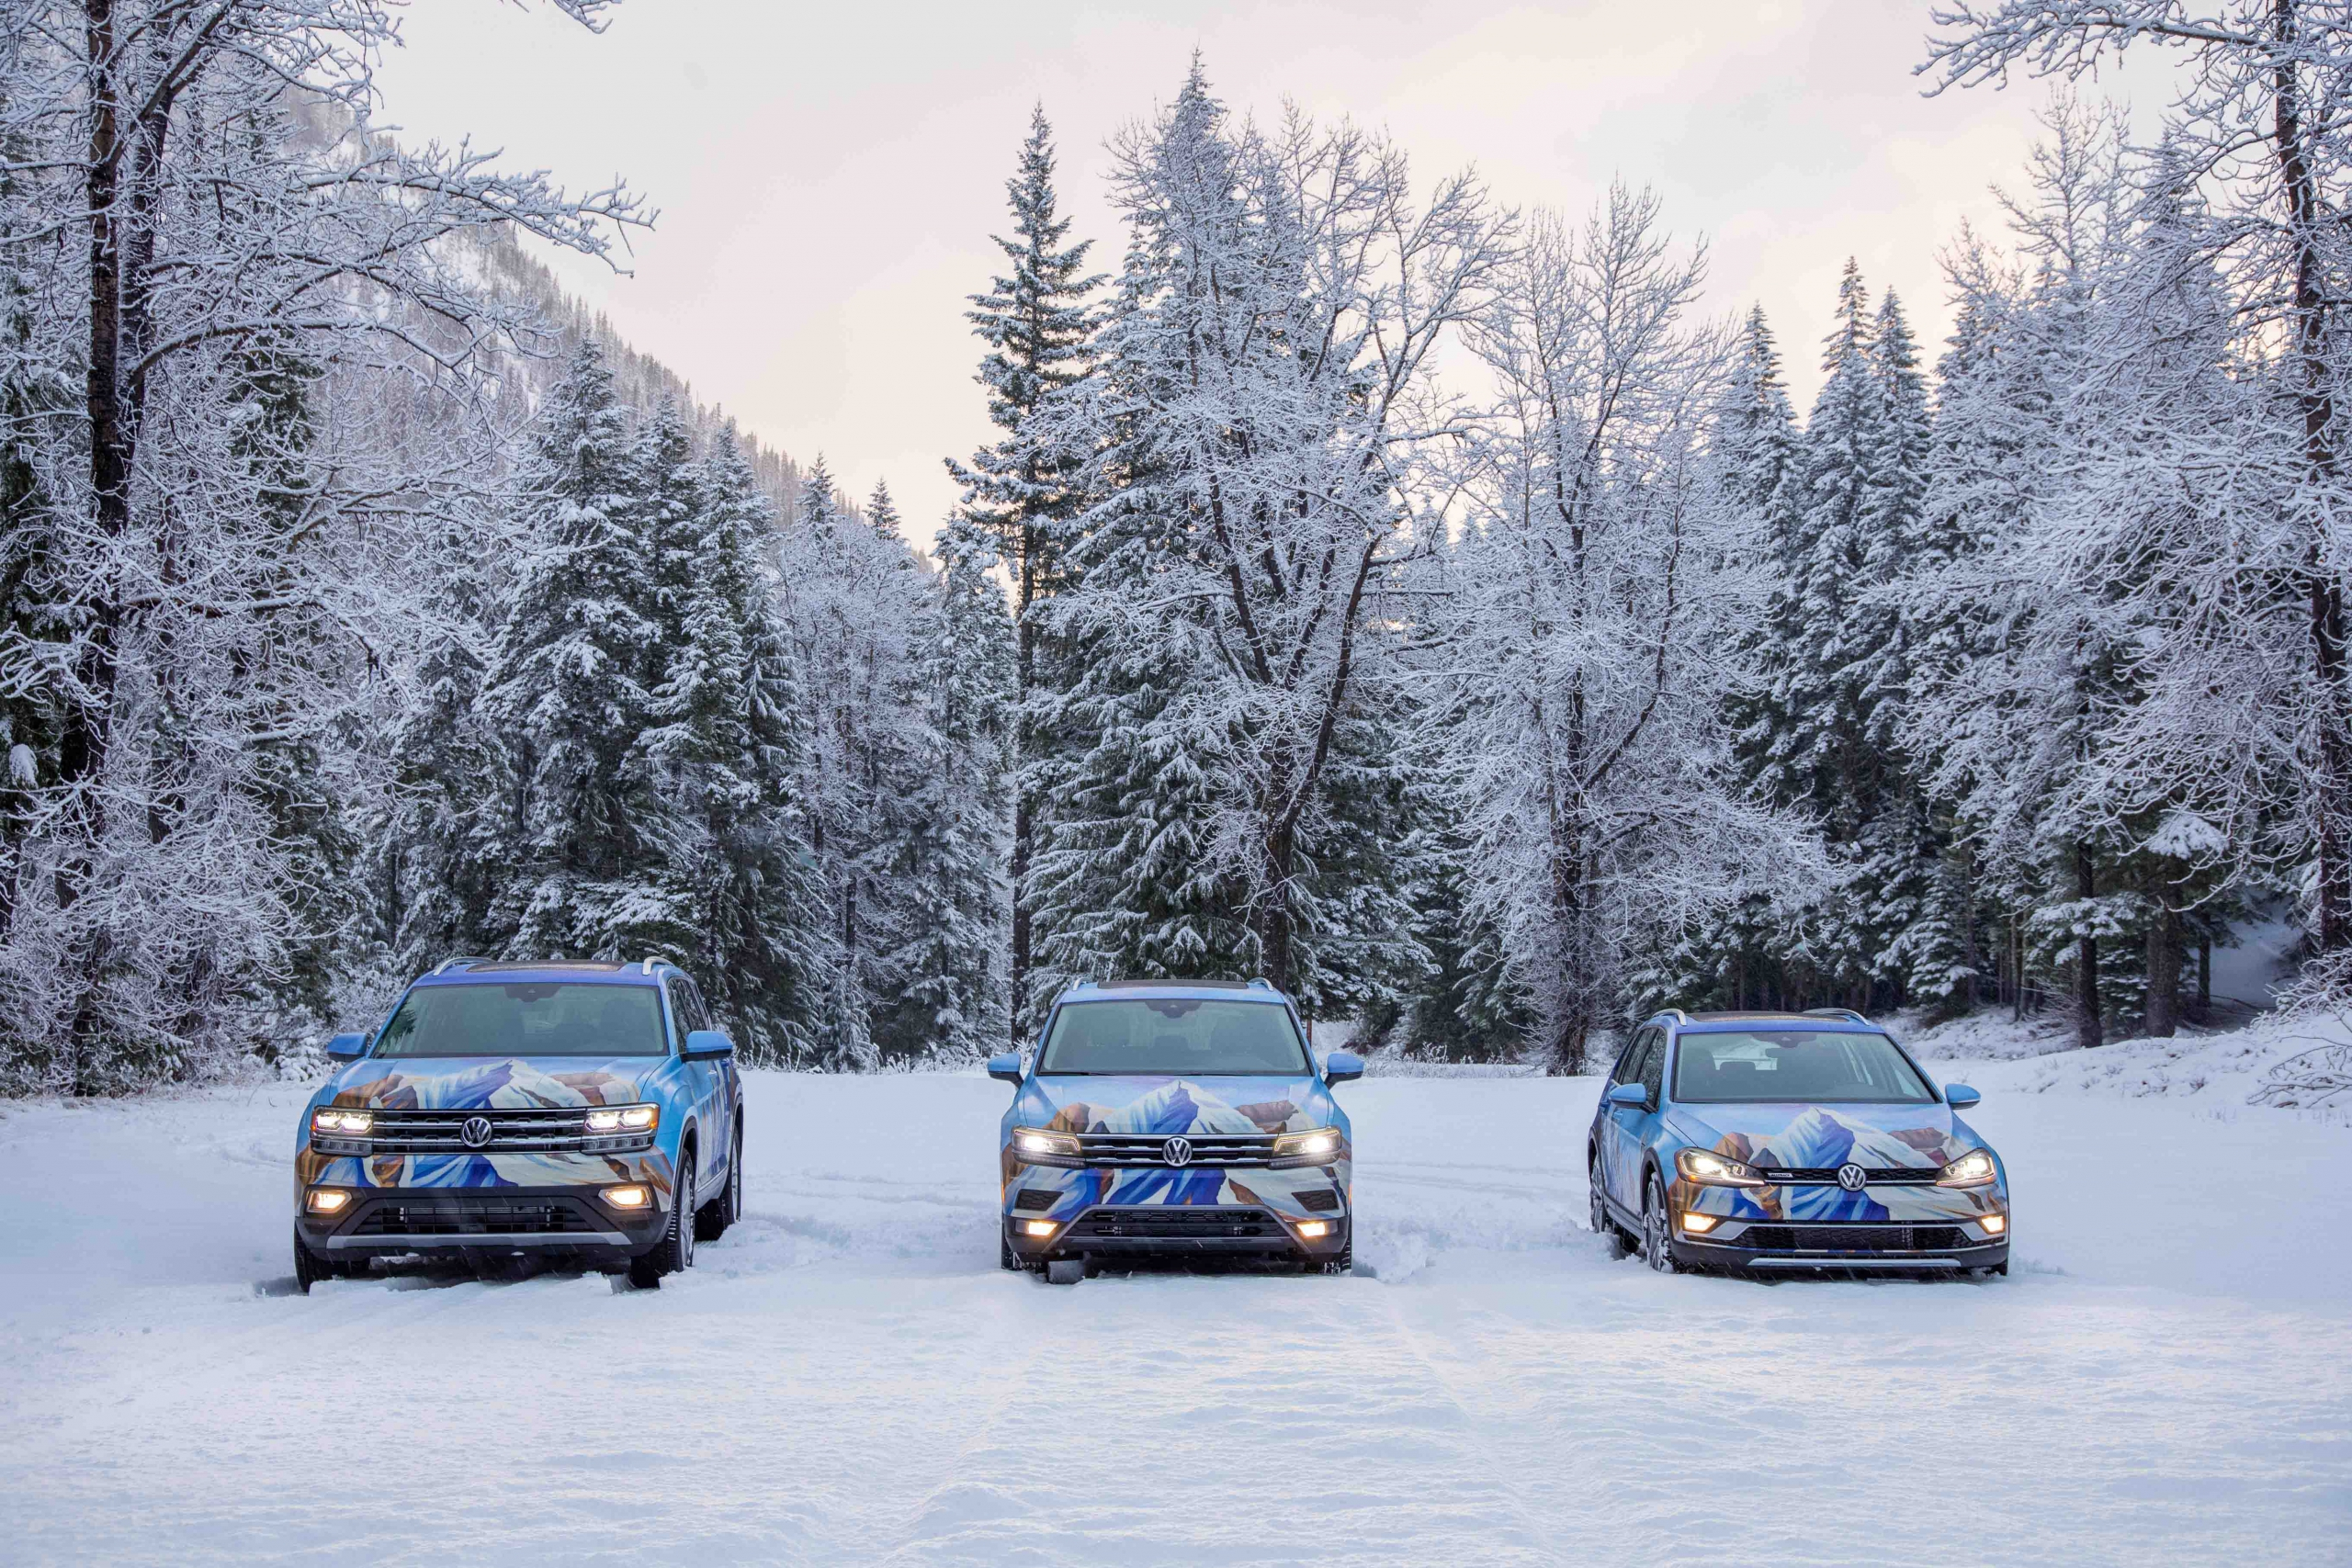 The PSIA-AASI custom painted Atlas Tiguan and Alltrack are parked in a snow covered parking area facing the camera